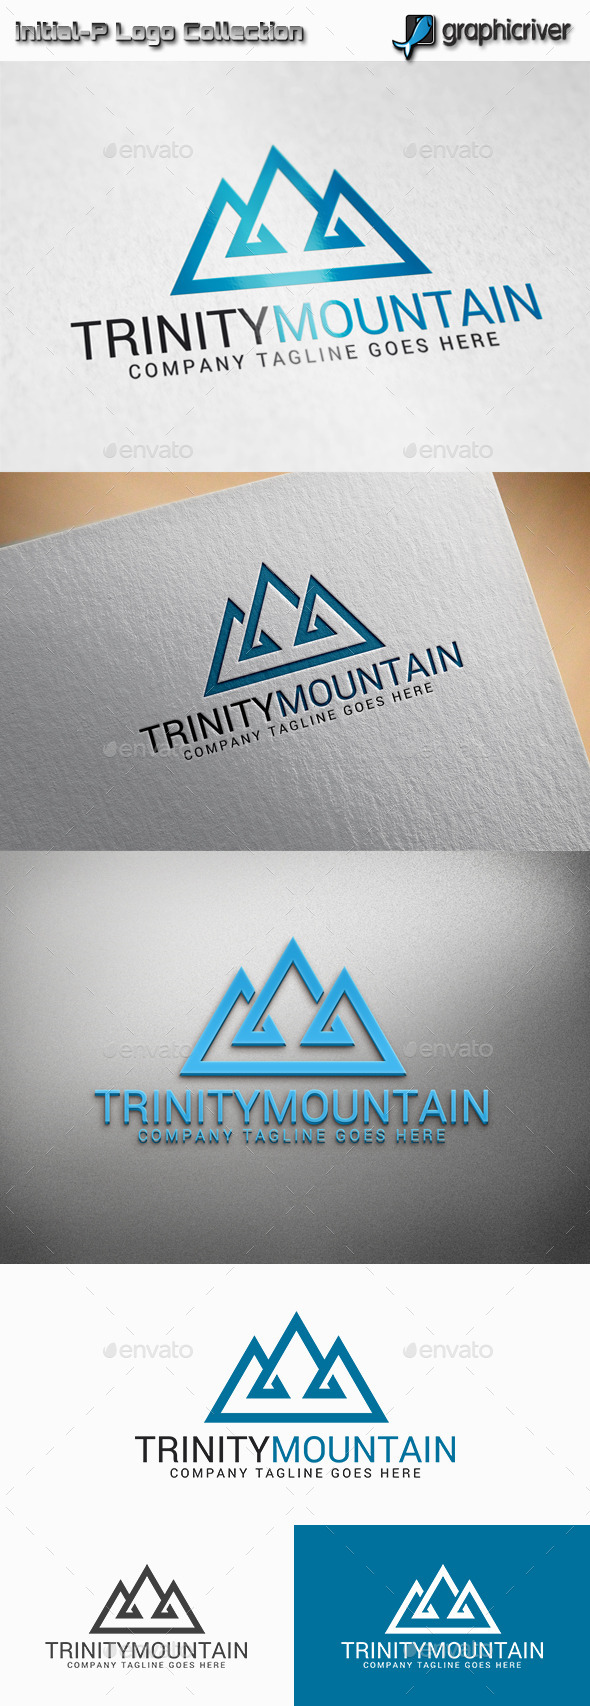 GraphicRiver Trinity Mountain Logo 11358721